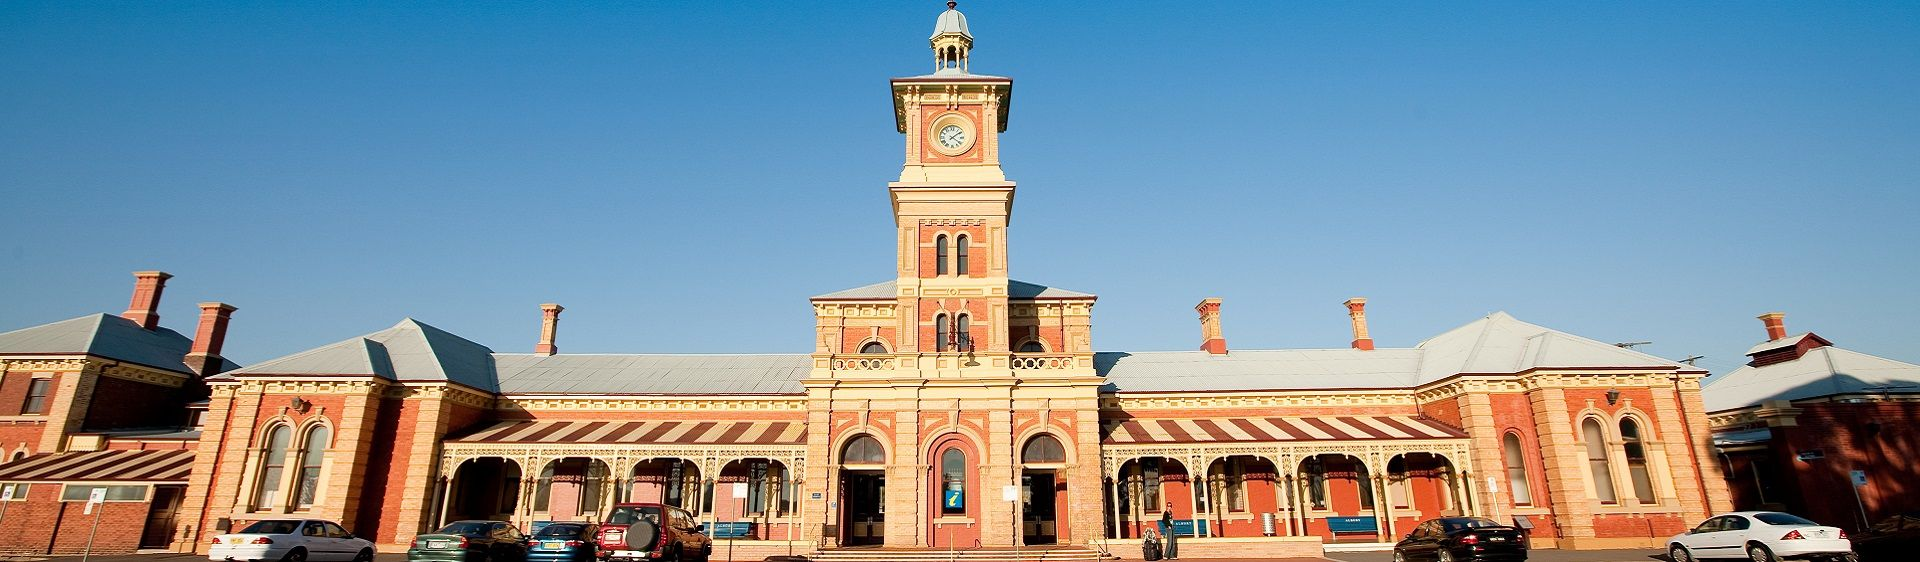 The Murray - Albury Railway Station